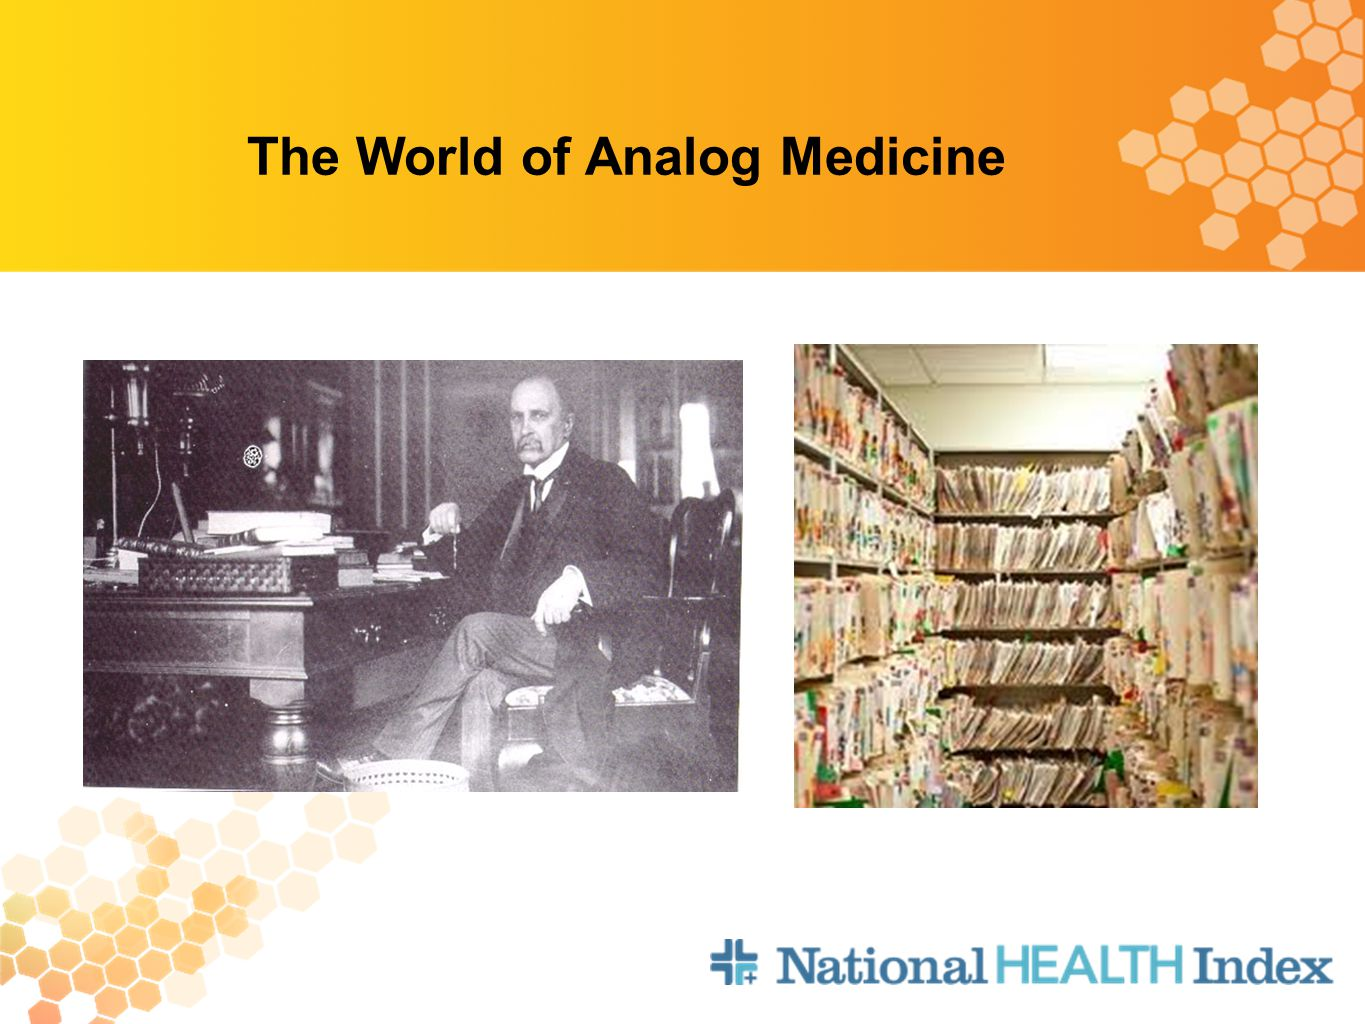 The World of Analog Medicine